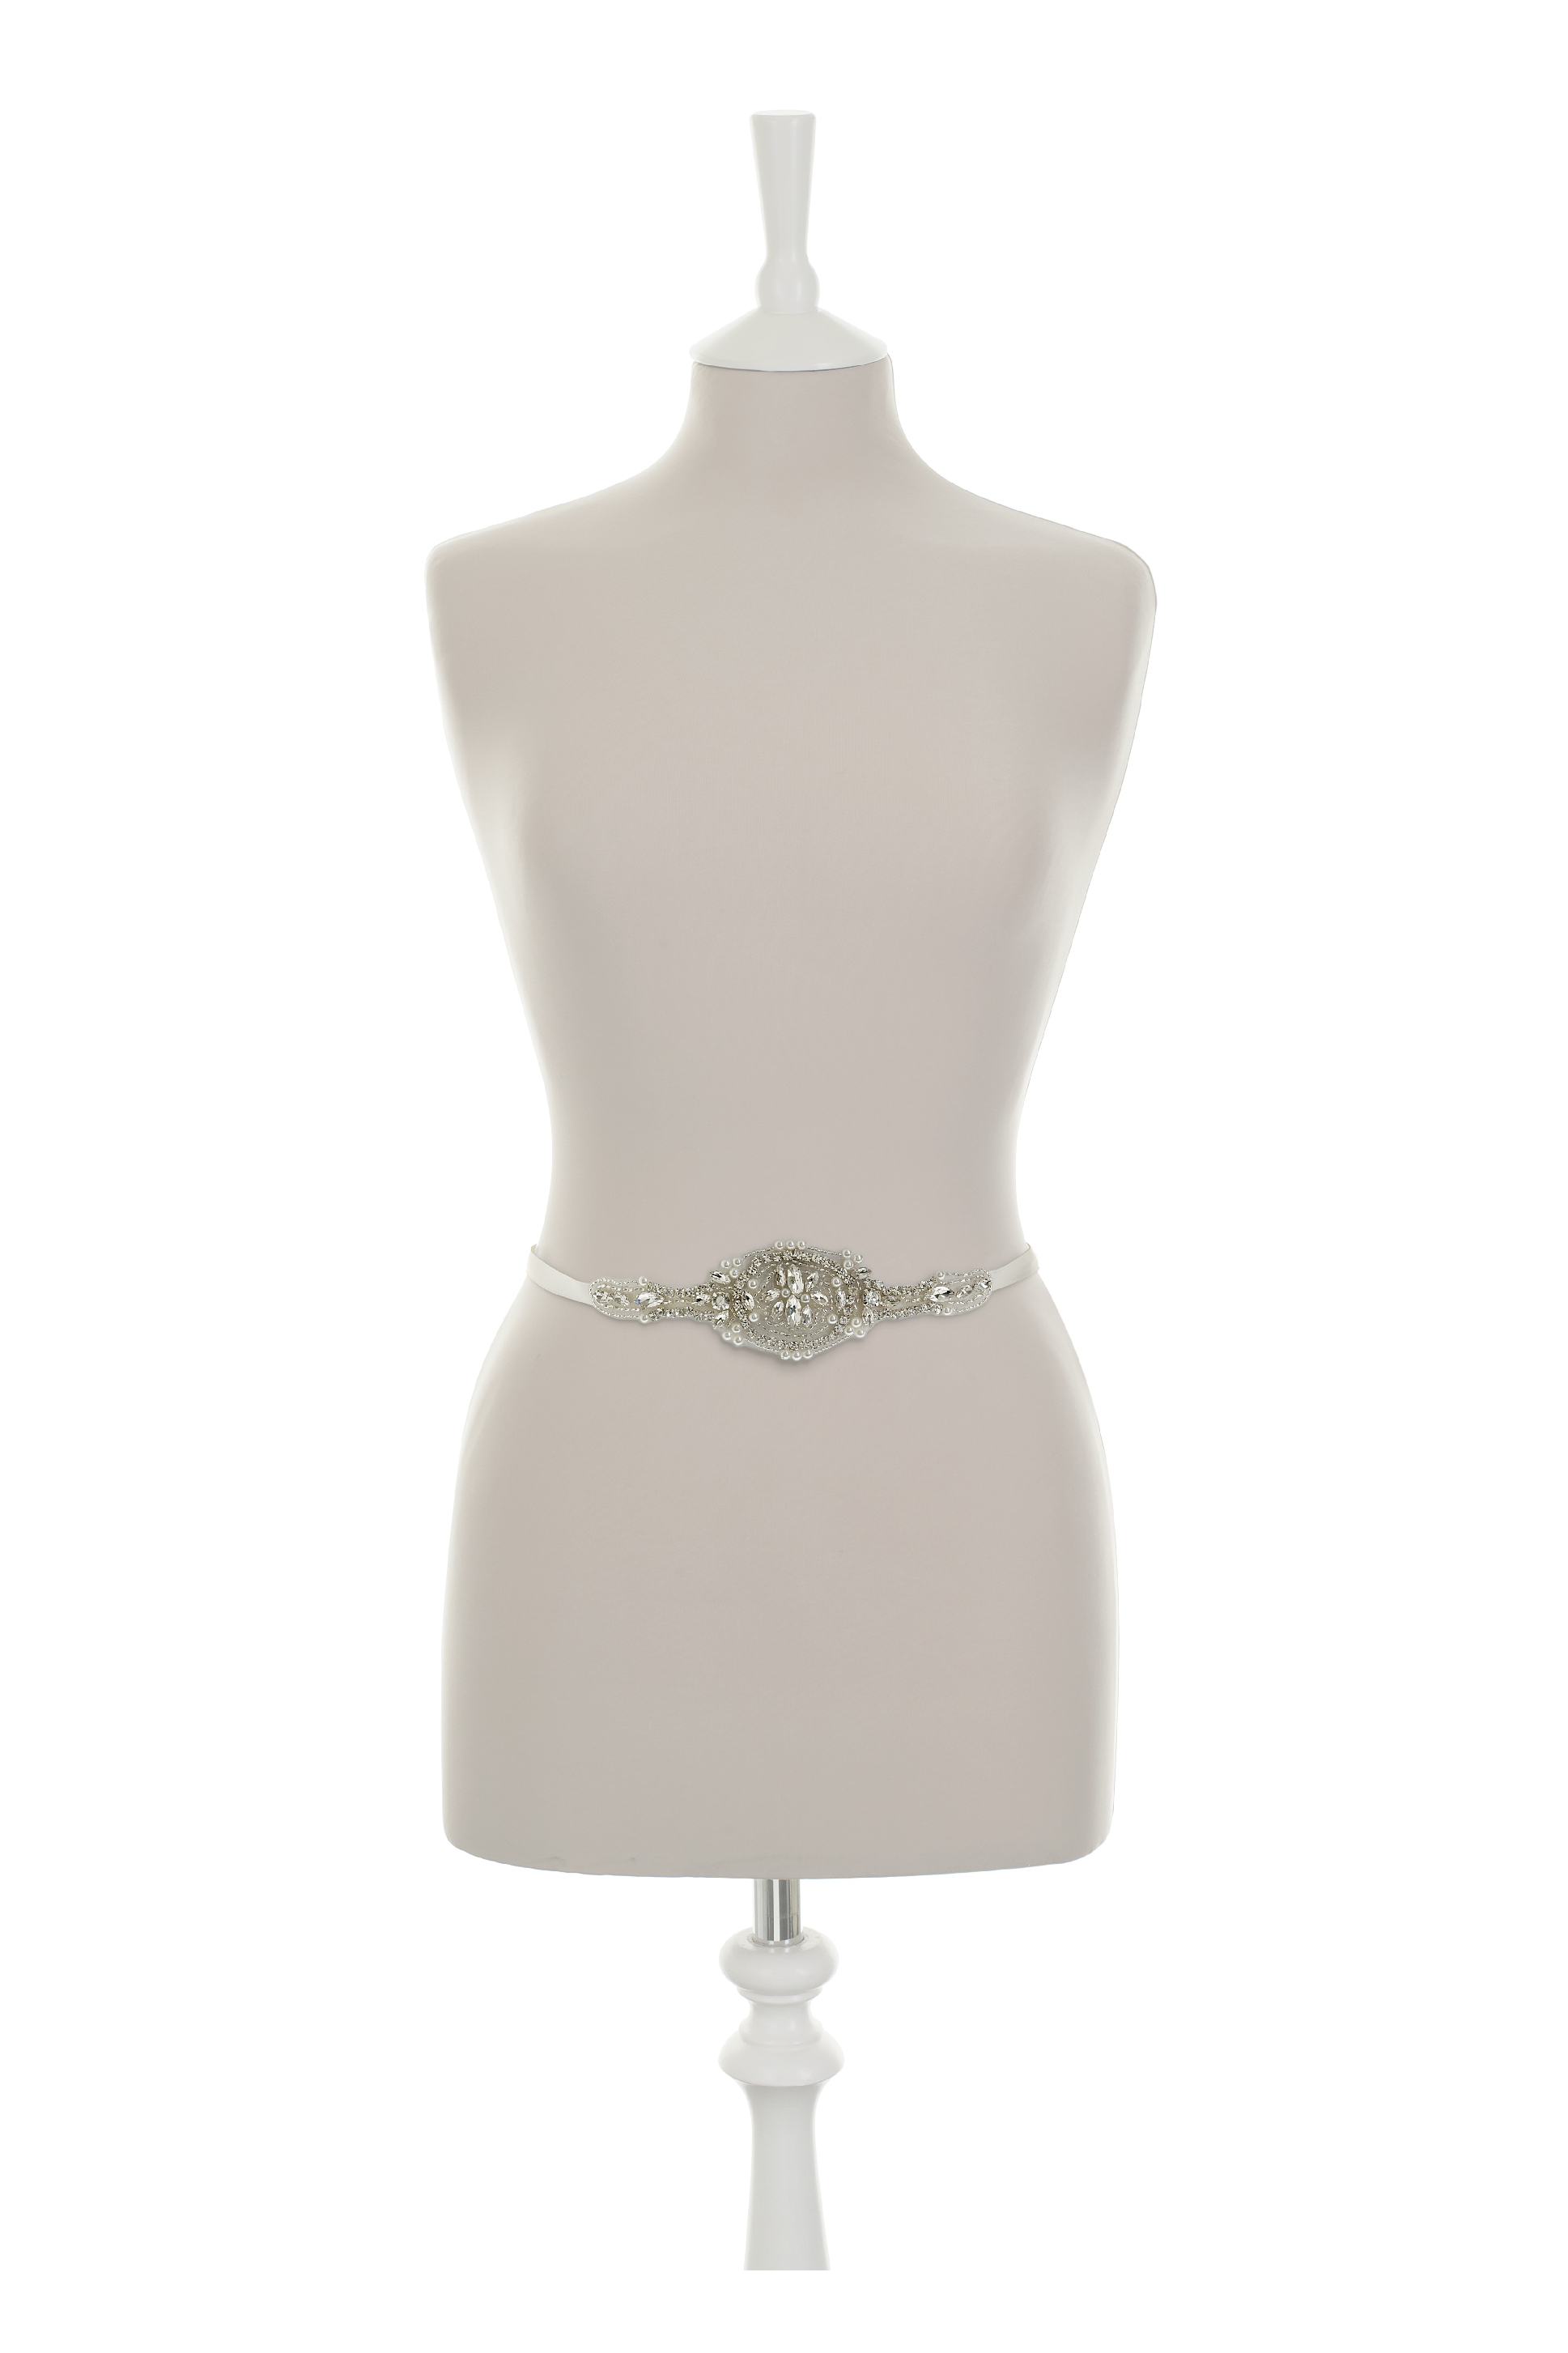 belts-website-01